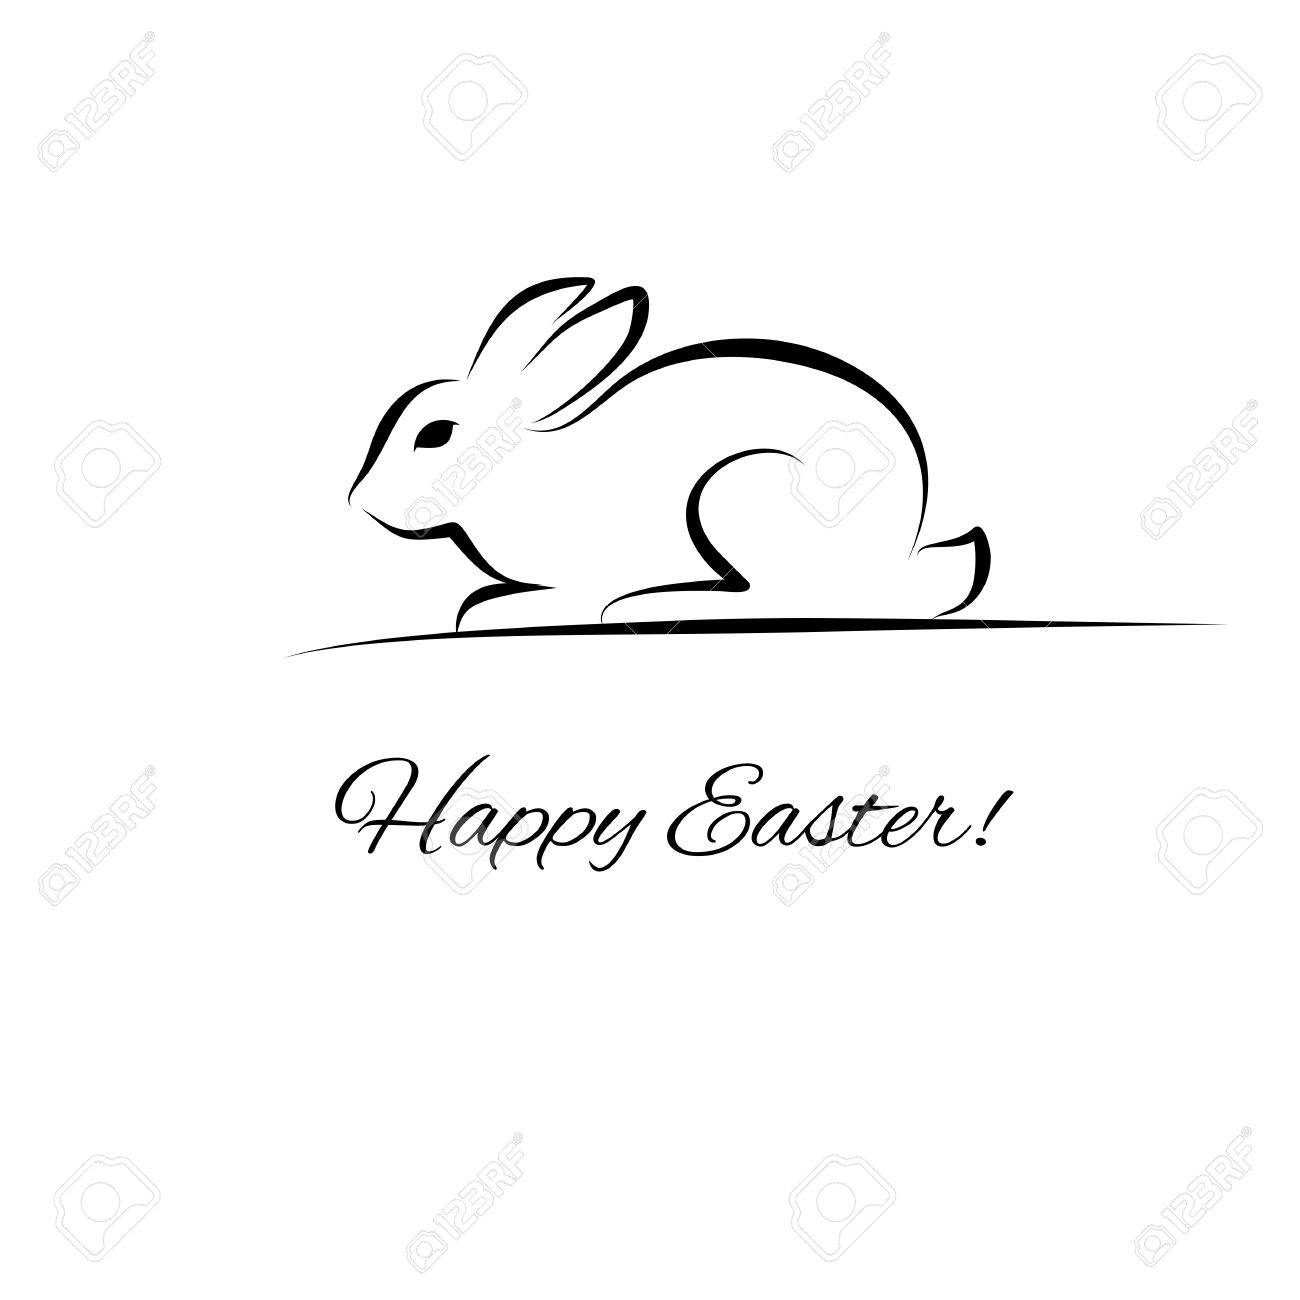 Easter Card With Rabbit Outline Royalty Free Cliparts, Vectors ...